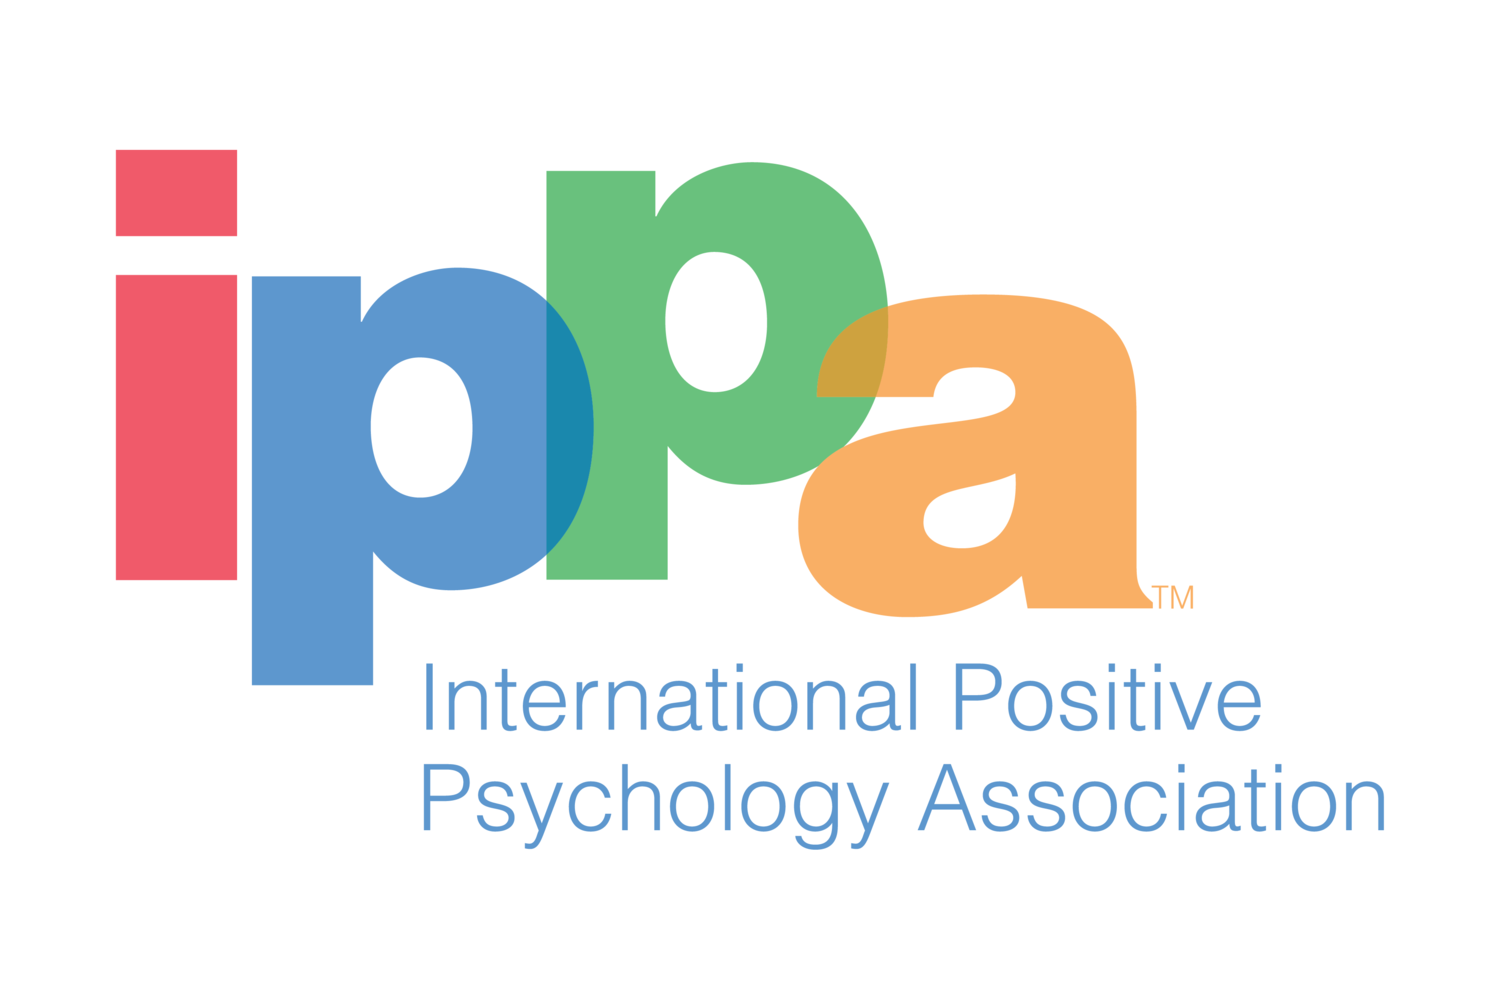 World Congress on Positive Psychology